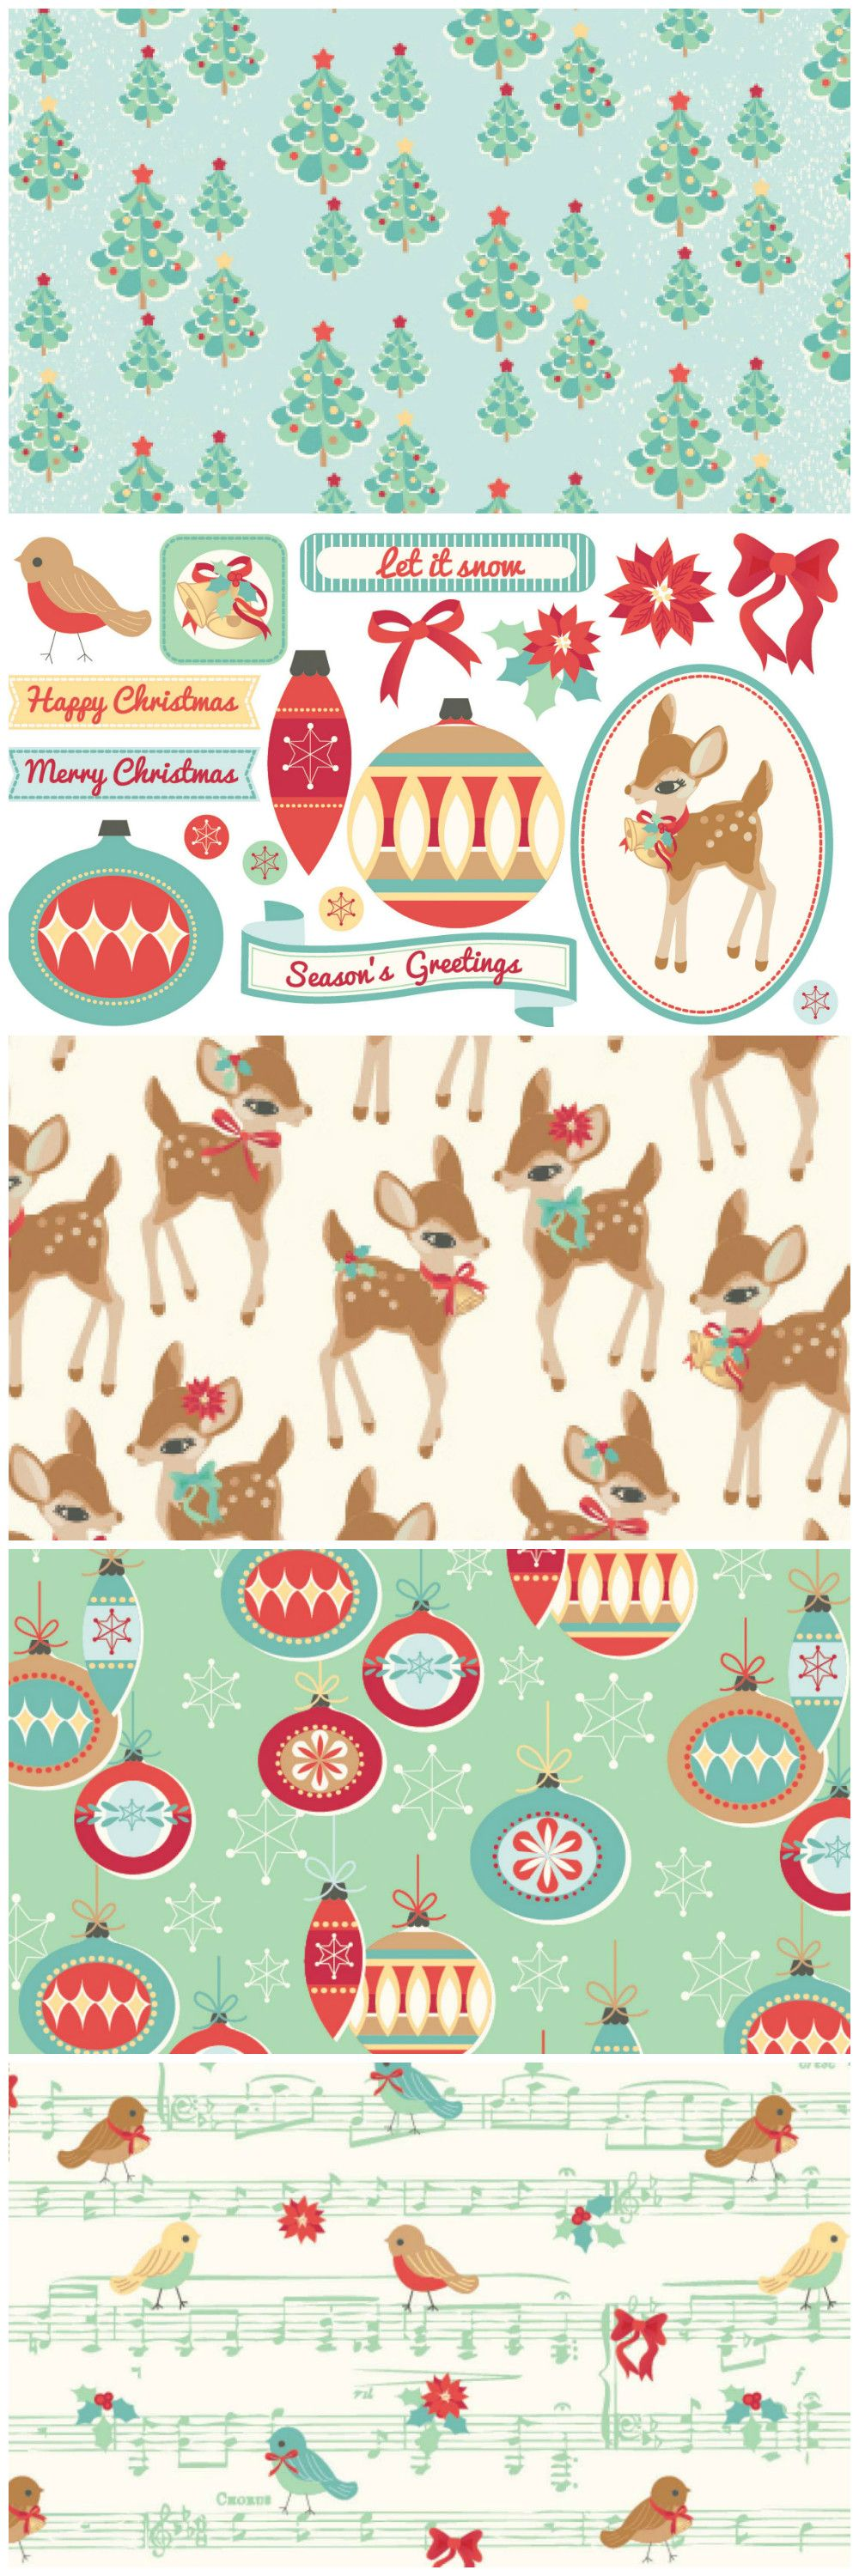 Make beautiful retro Christmas cards using our free digital papers.                                                                                                                                                                                 More